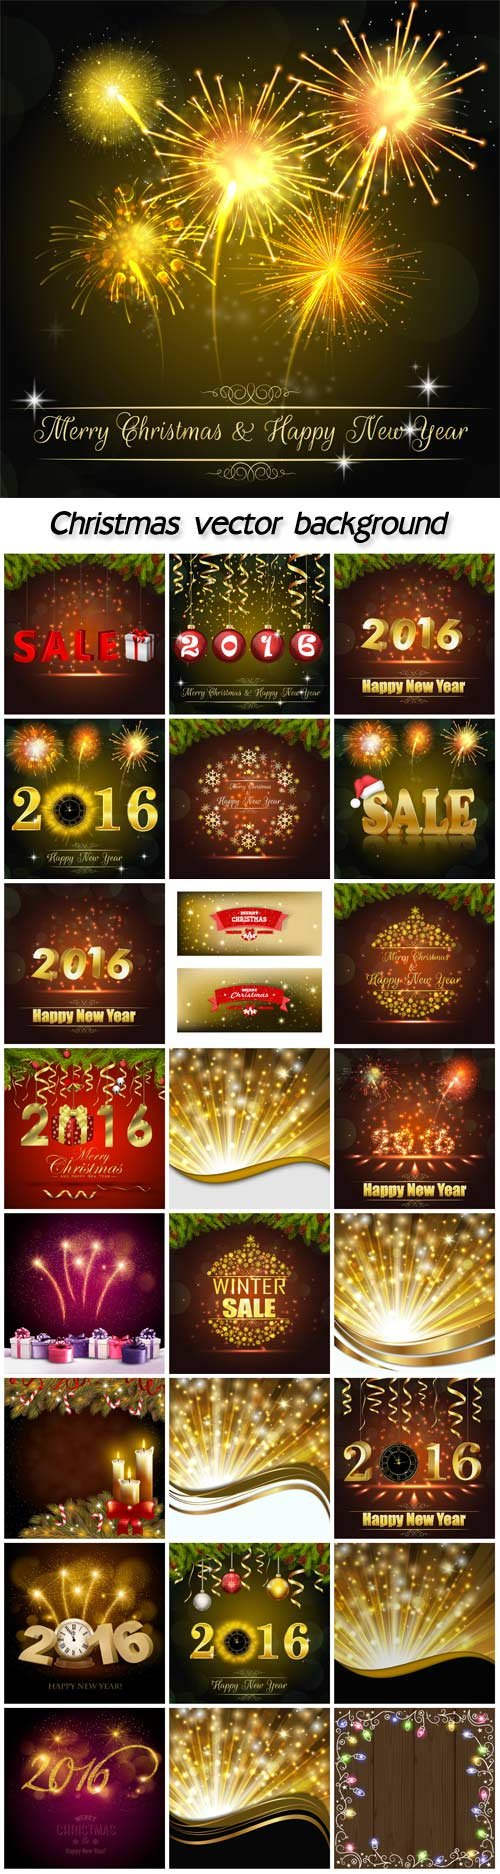 Holiday christmas background with colorful gift boxes and firework